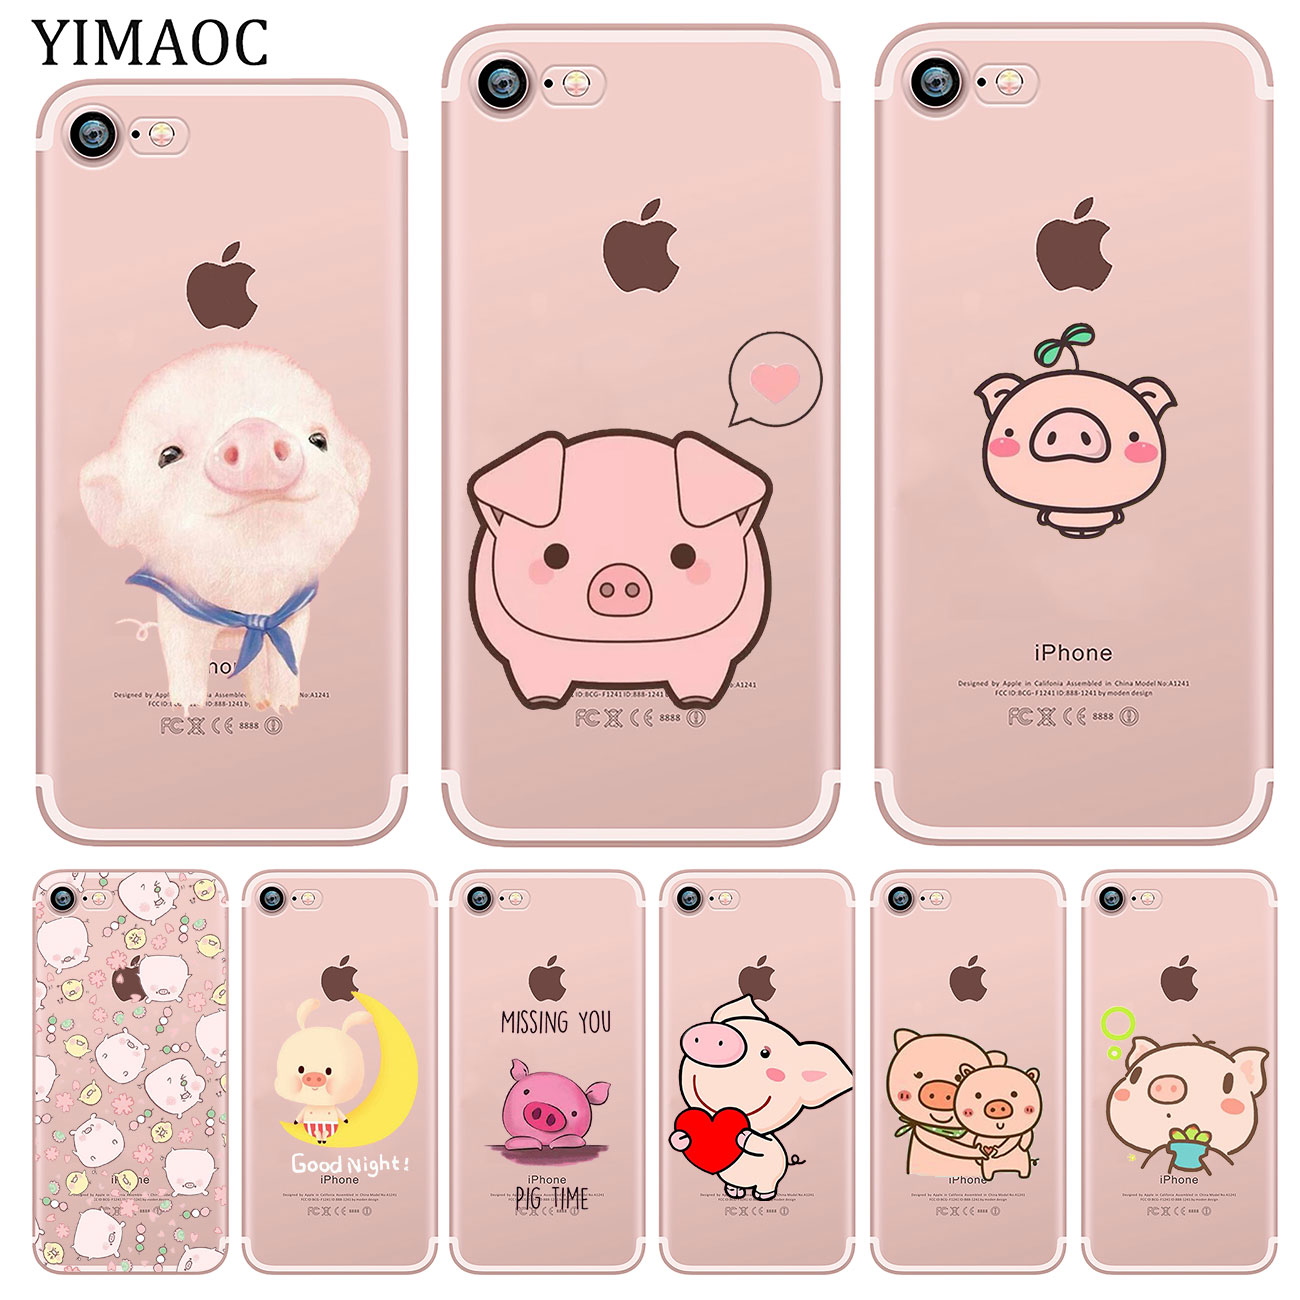 2d9f584ac4 YIMAOC-Piggy-cute-pig-Lovely-Soft-Silicone-Phone-Shell-Case-for-iPhone-X-XS- Max-XR.jpg